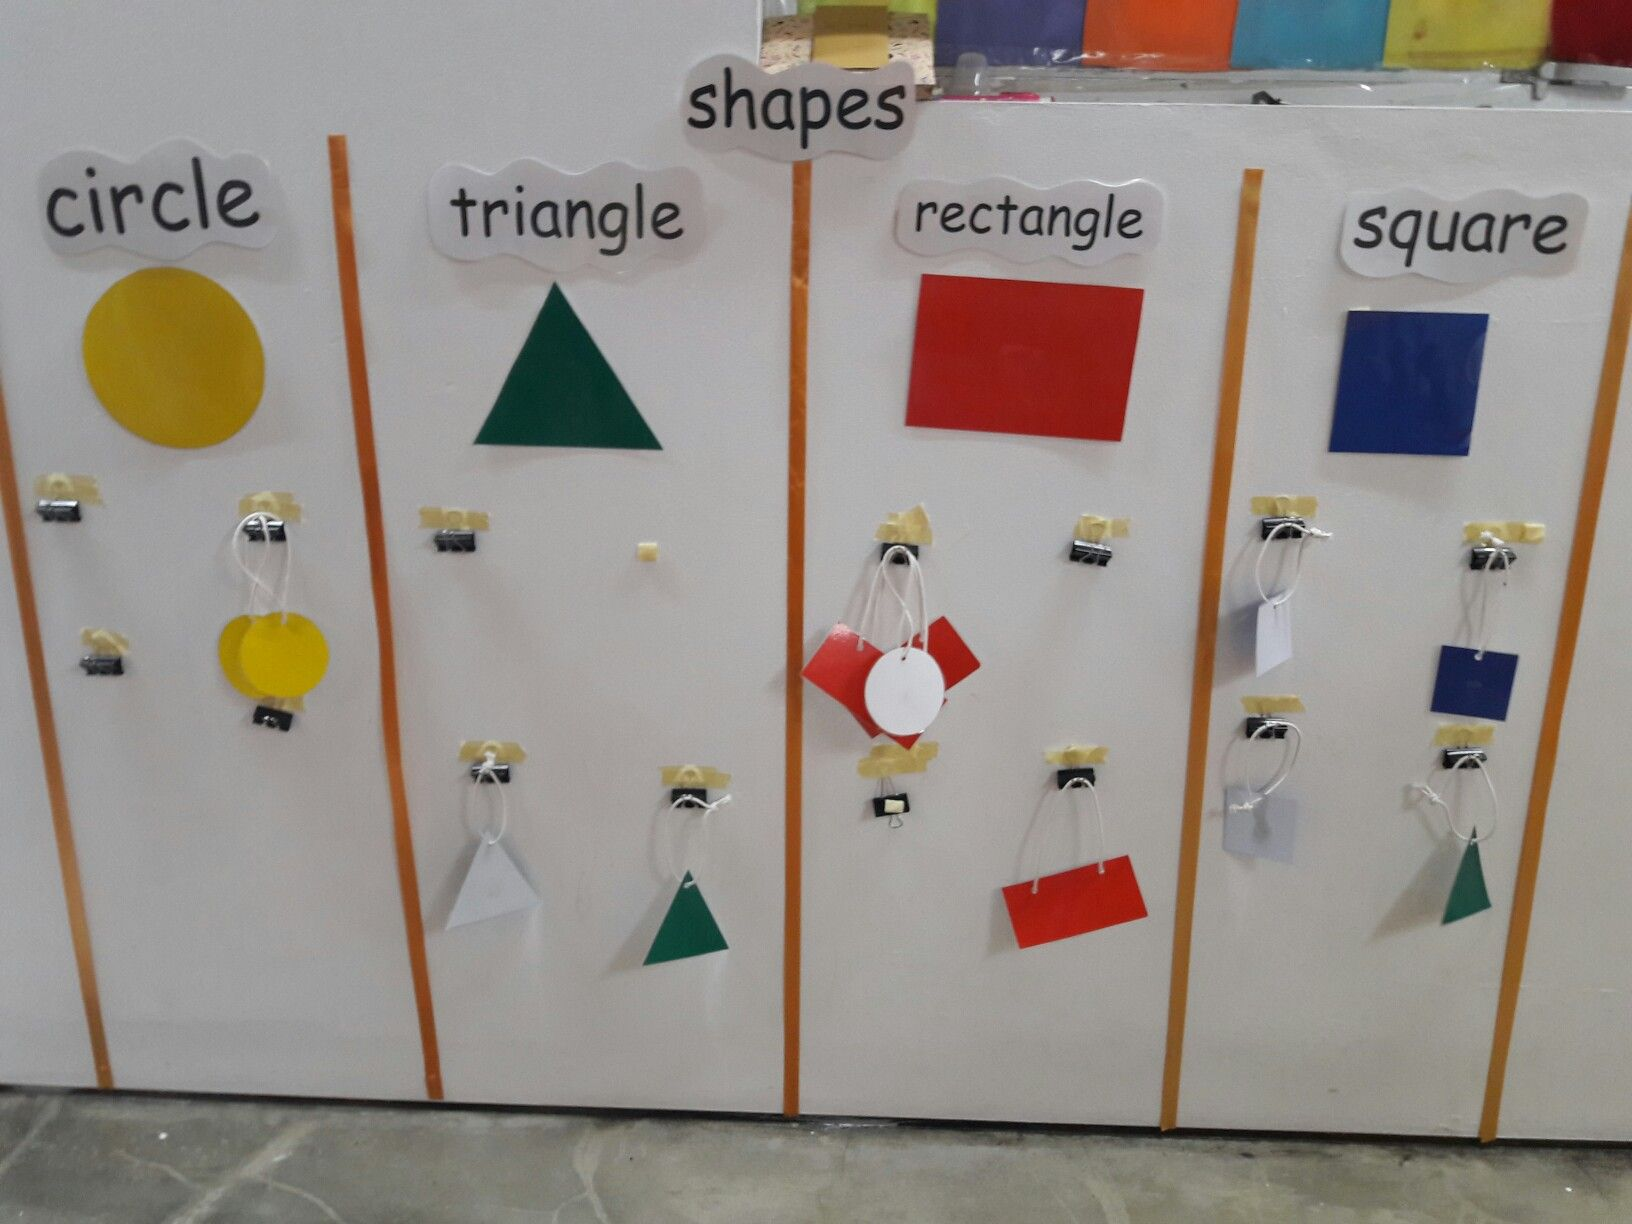 Made this for toddlers to expose them with shapes and colors